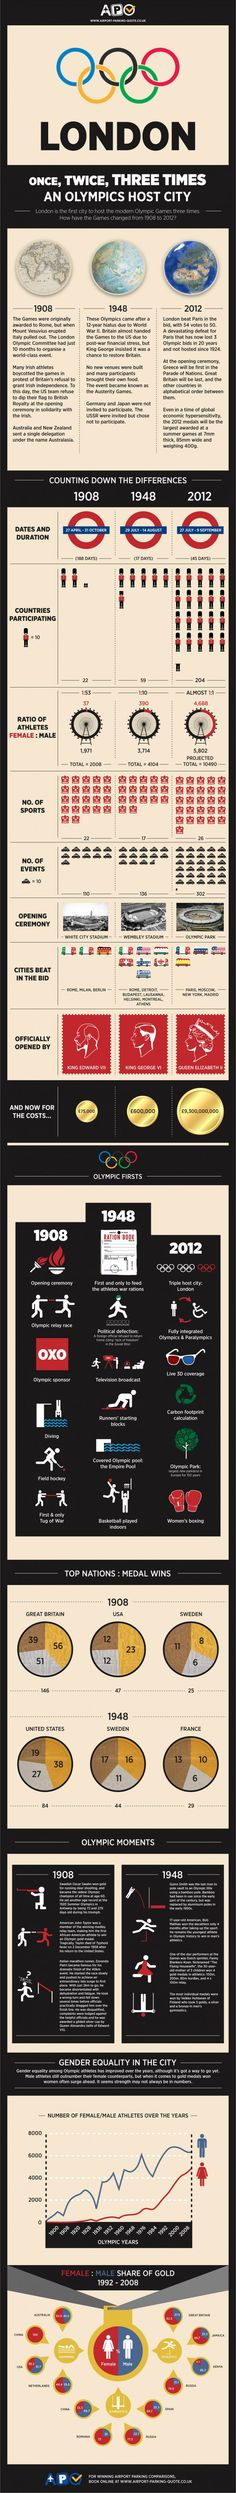 Three Time Olympic City.